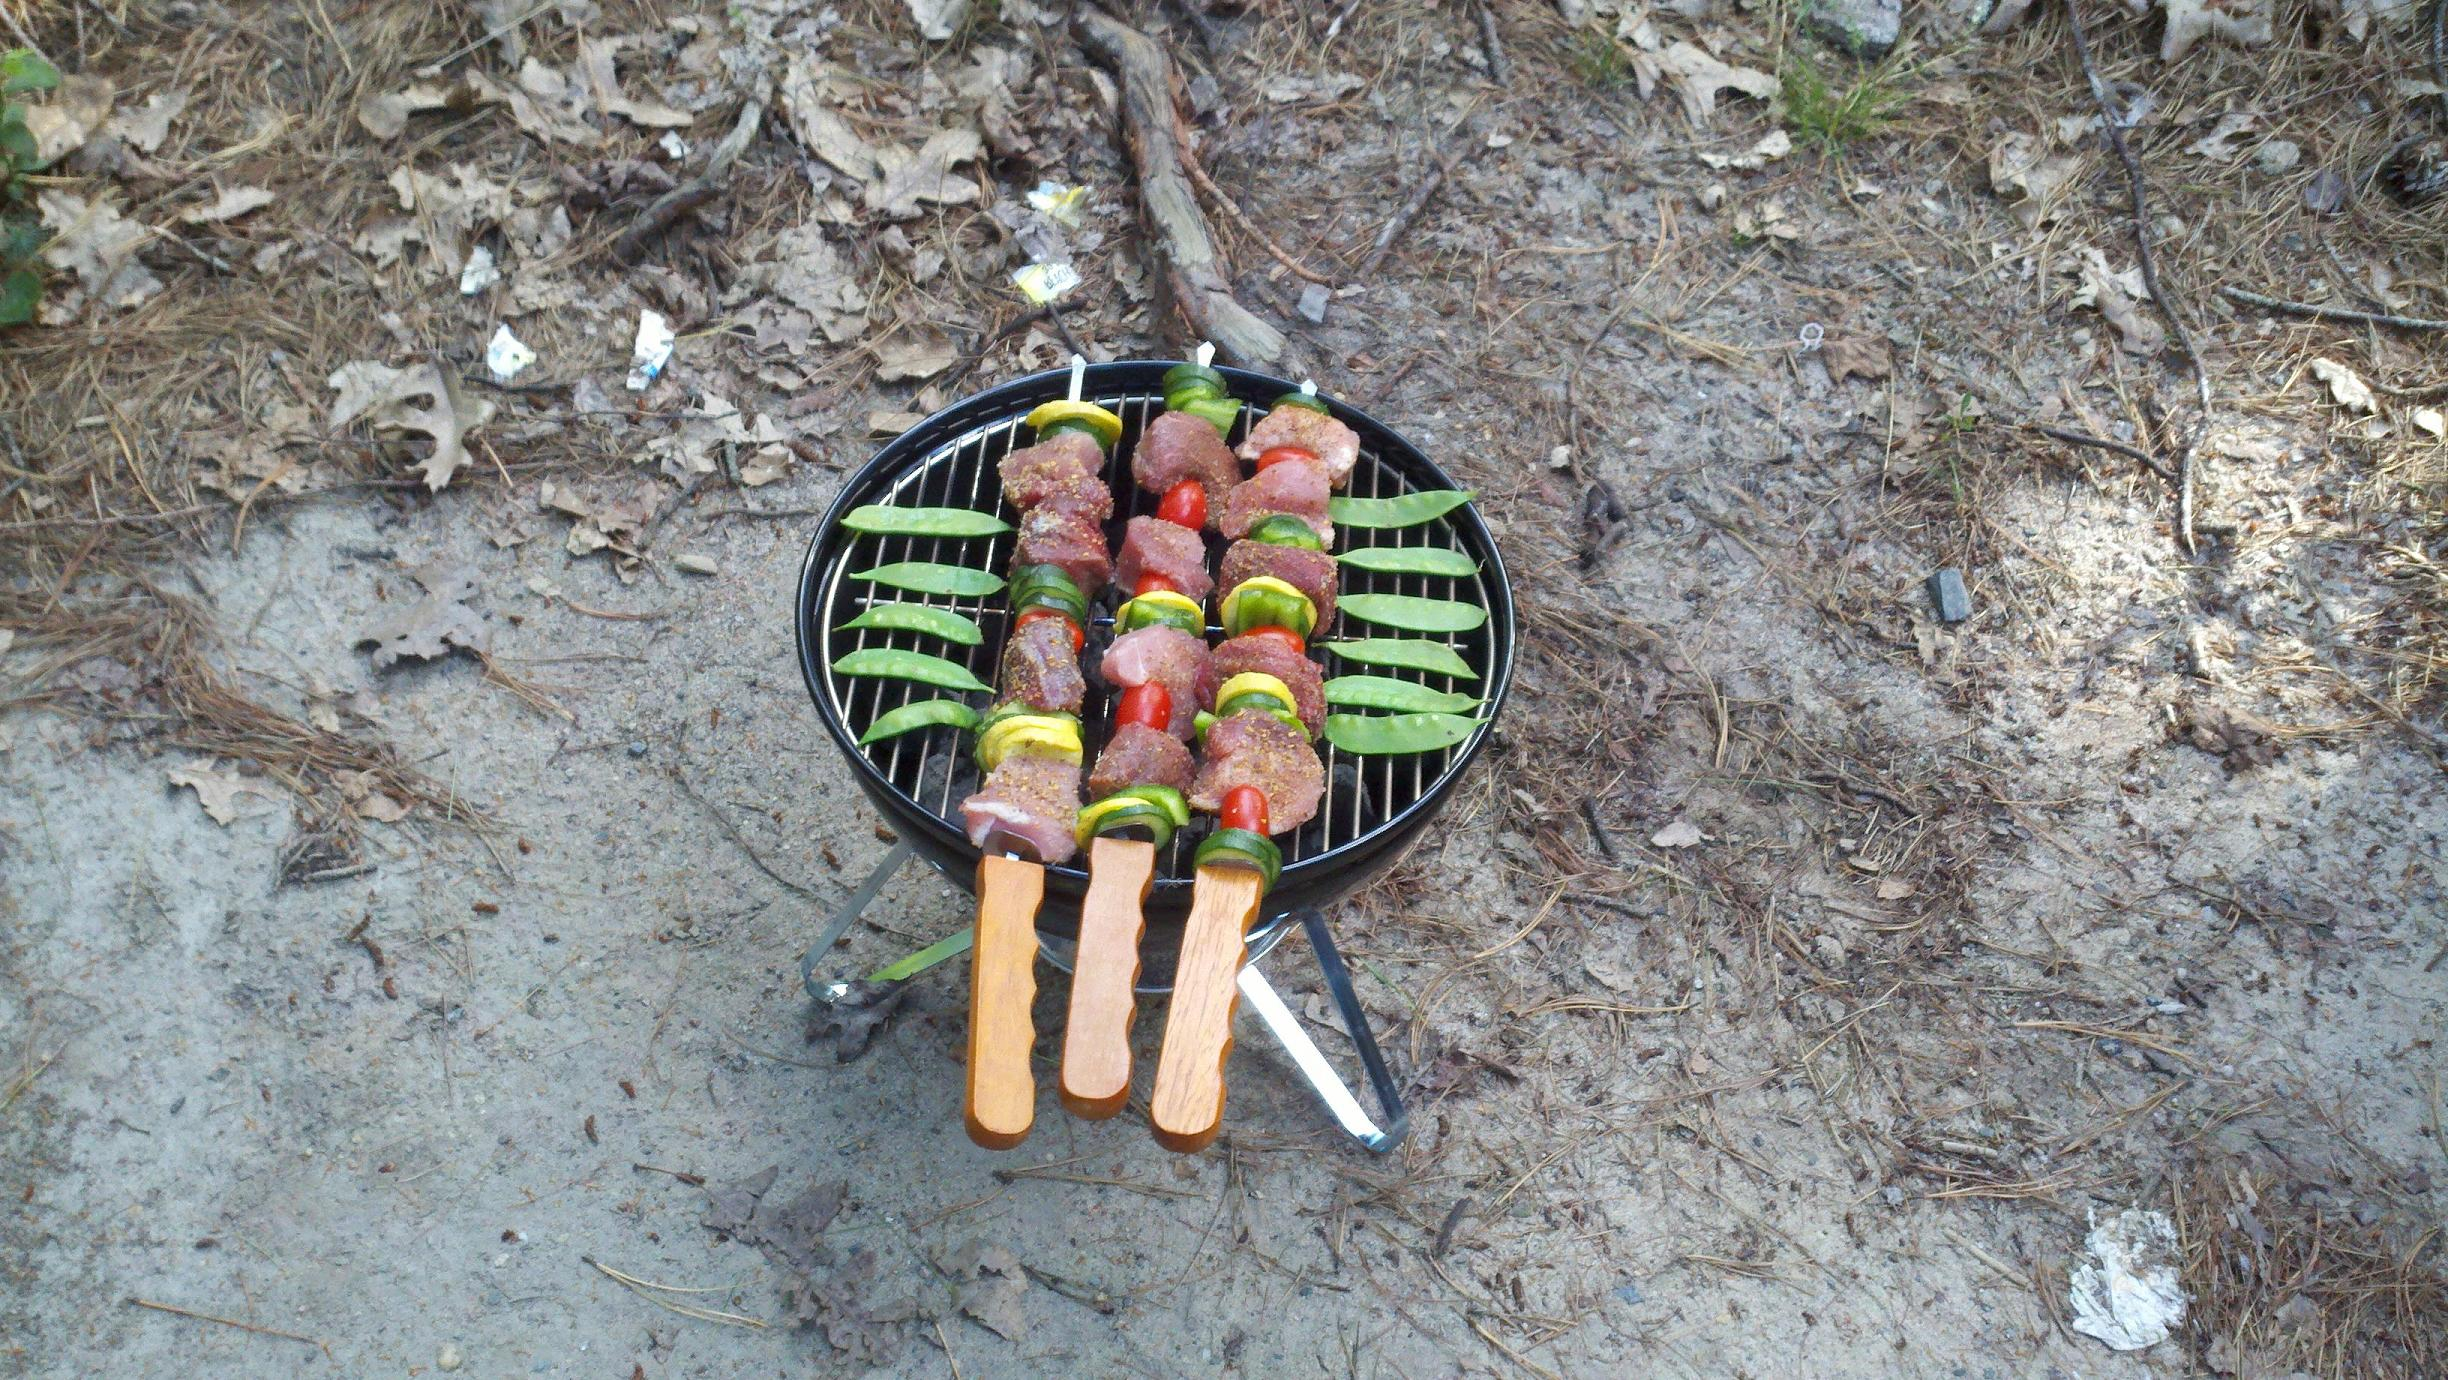 jellystone park, wareham, ma :: pork and beef kabobs with zucchini, summer squash, green peppers and tomatoes. Szeged rub on it all. throw some snow peas on the grill for garnish and.. viola!